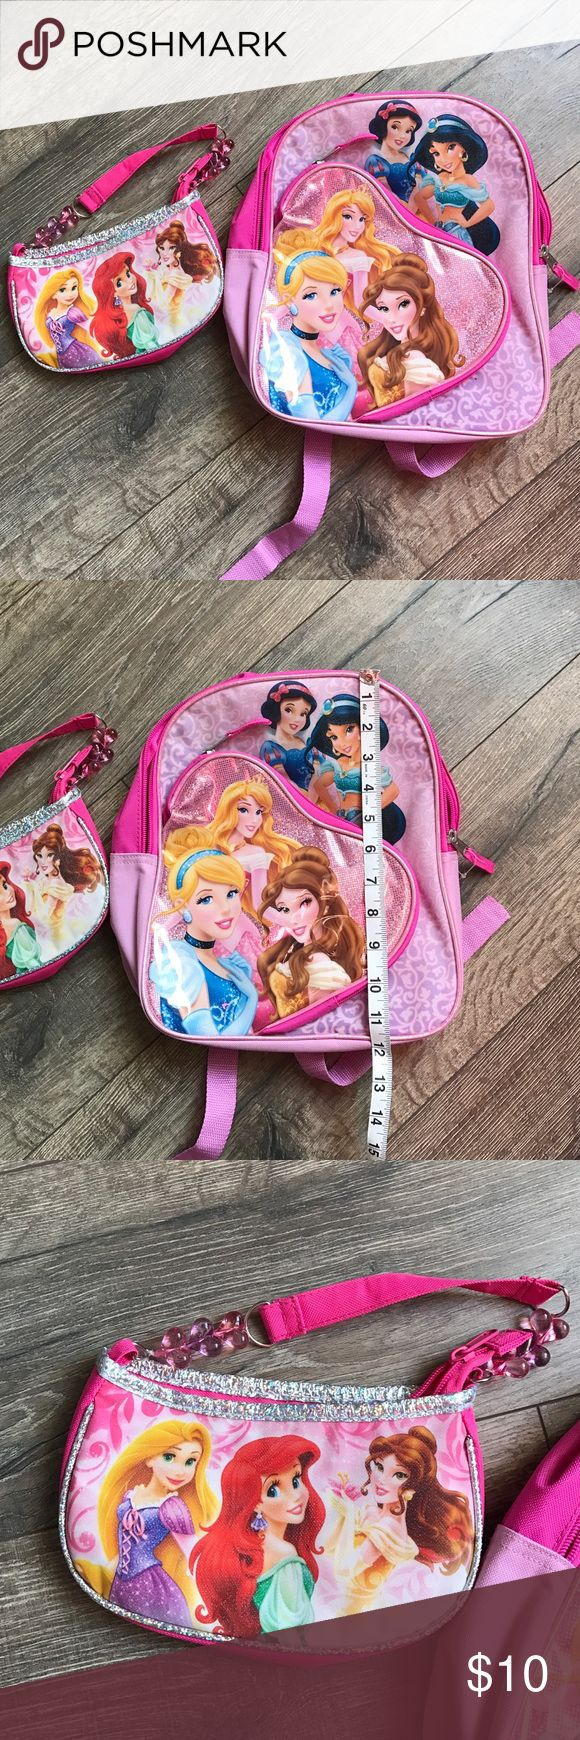 Disney princess backpack and purse set Never used Disney princess backpack and purse set. Accessories Bags